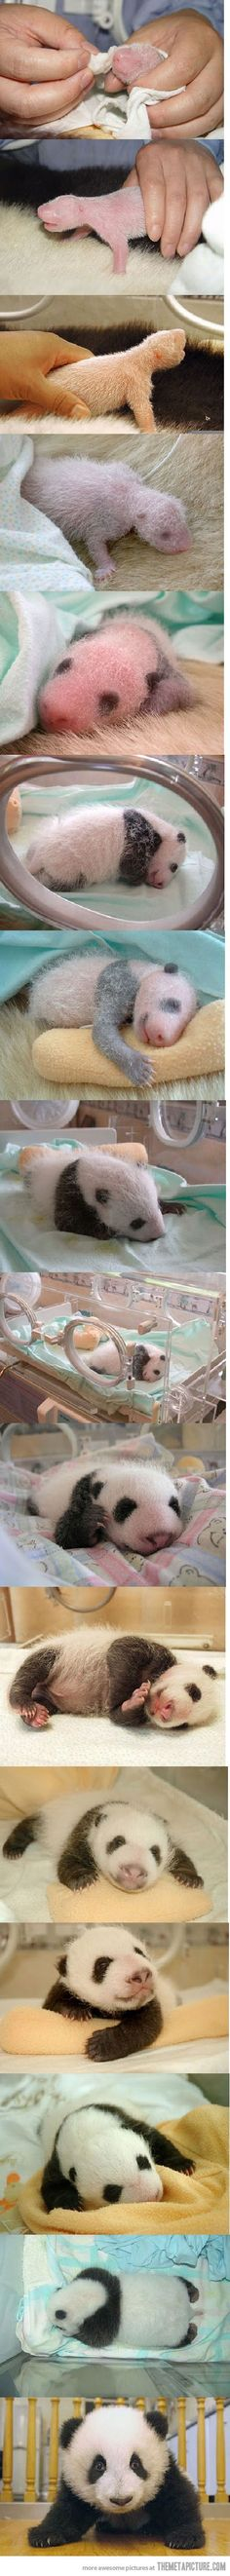 Baby Panda comes to the world...oh dear sweet baby jesus that is the cutest thing i have ever seen in my freaking life!